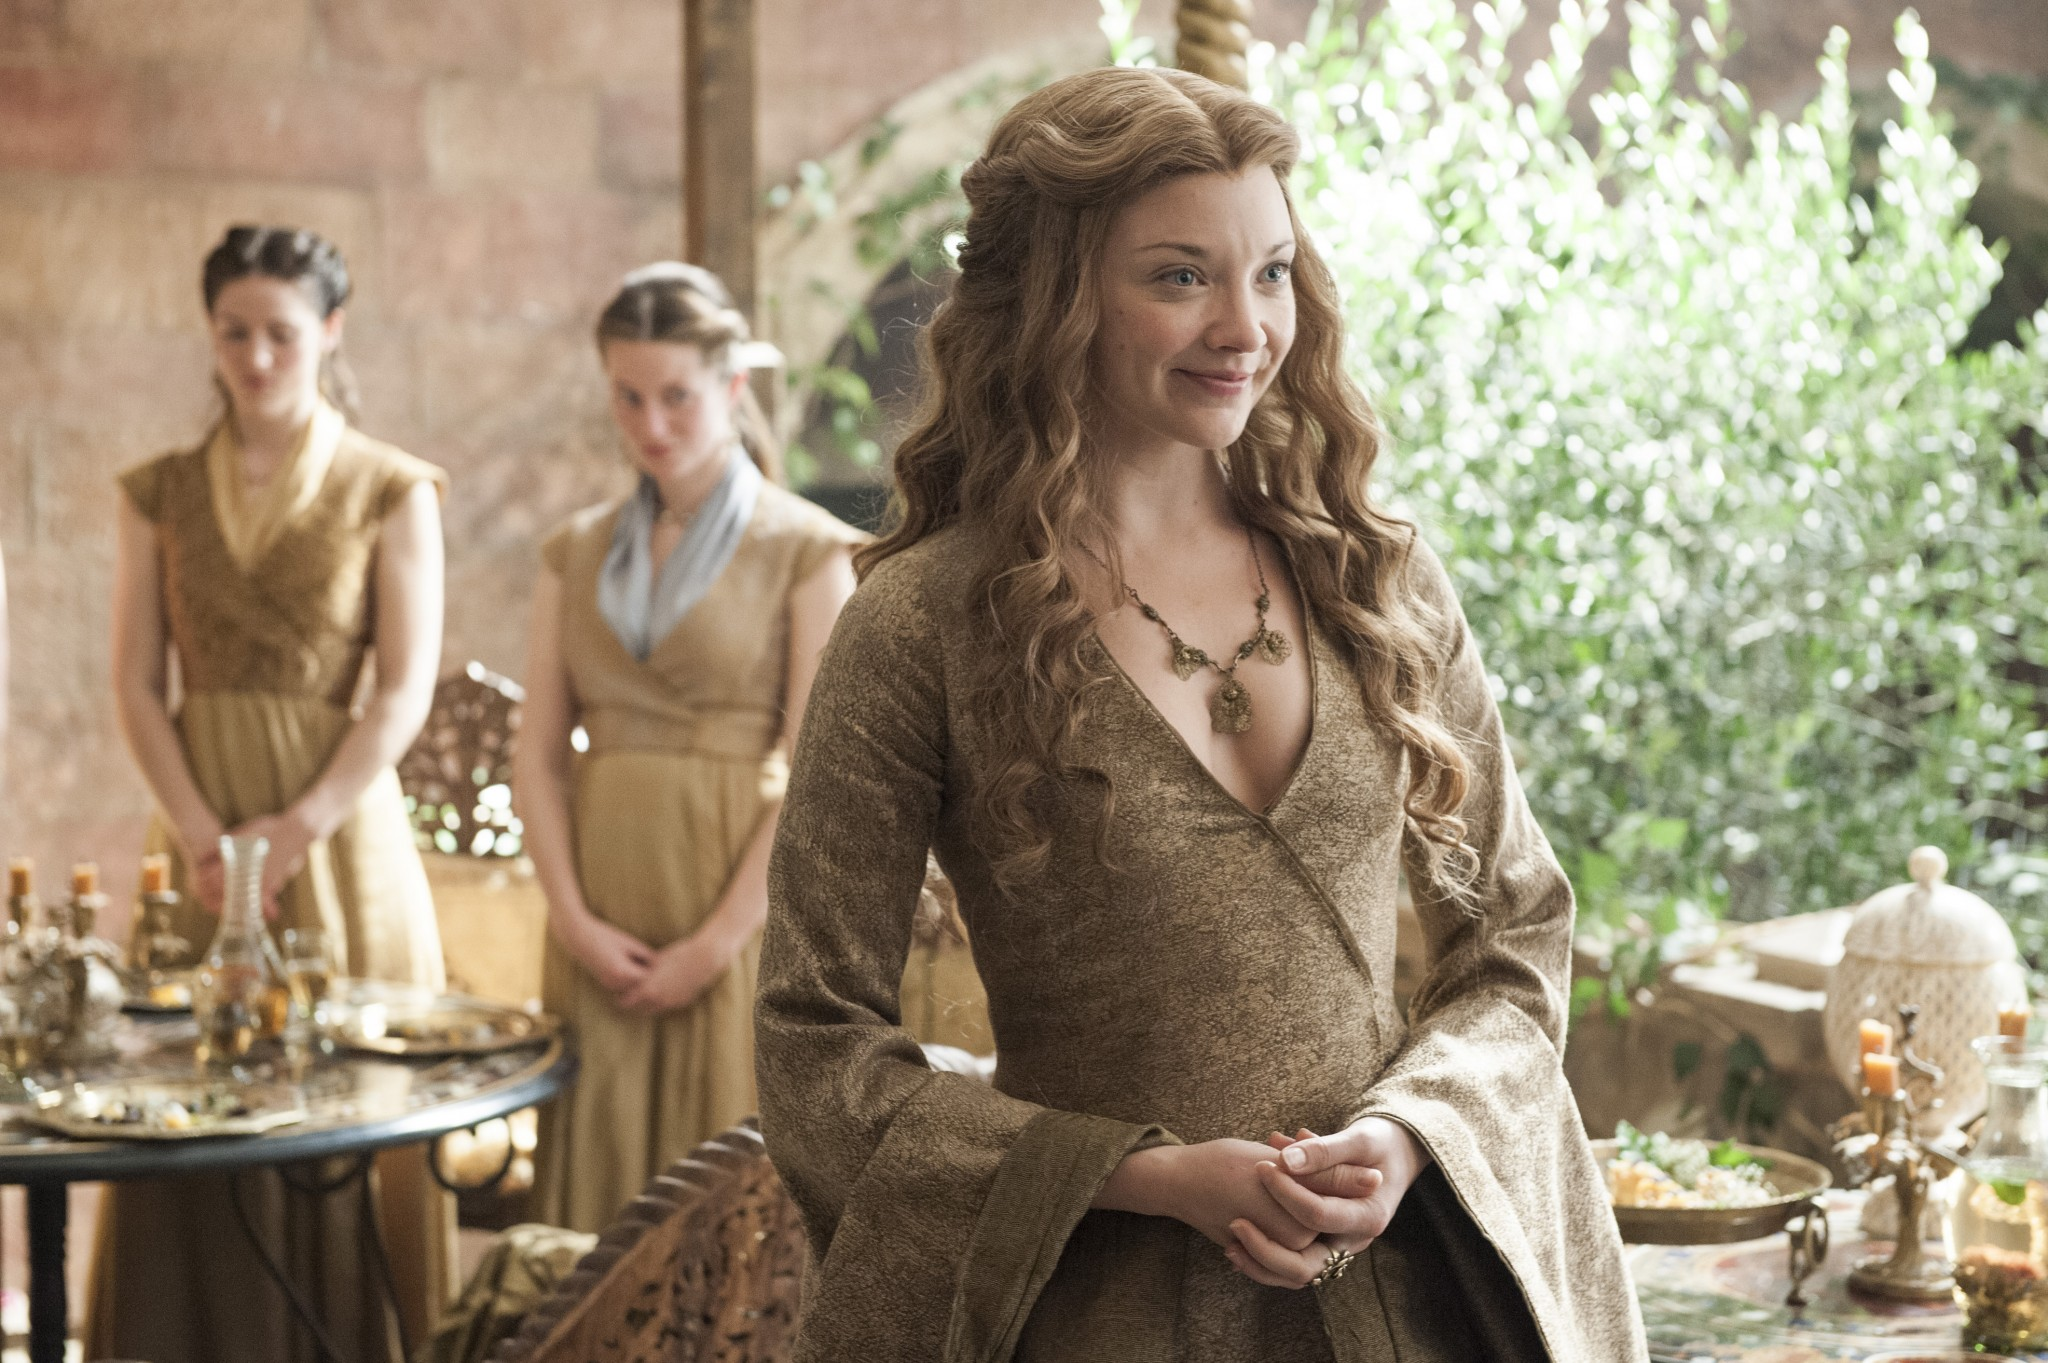 Margaery Tyrell was a gem. She was as manipulative and cunning as Cersei ever was, but she was nice about it, which makes her a true rarity and a character I personally really respect. I've gotten into full blown debates over this girl and I'm actually grieving for her loss right now.